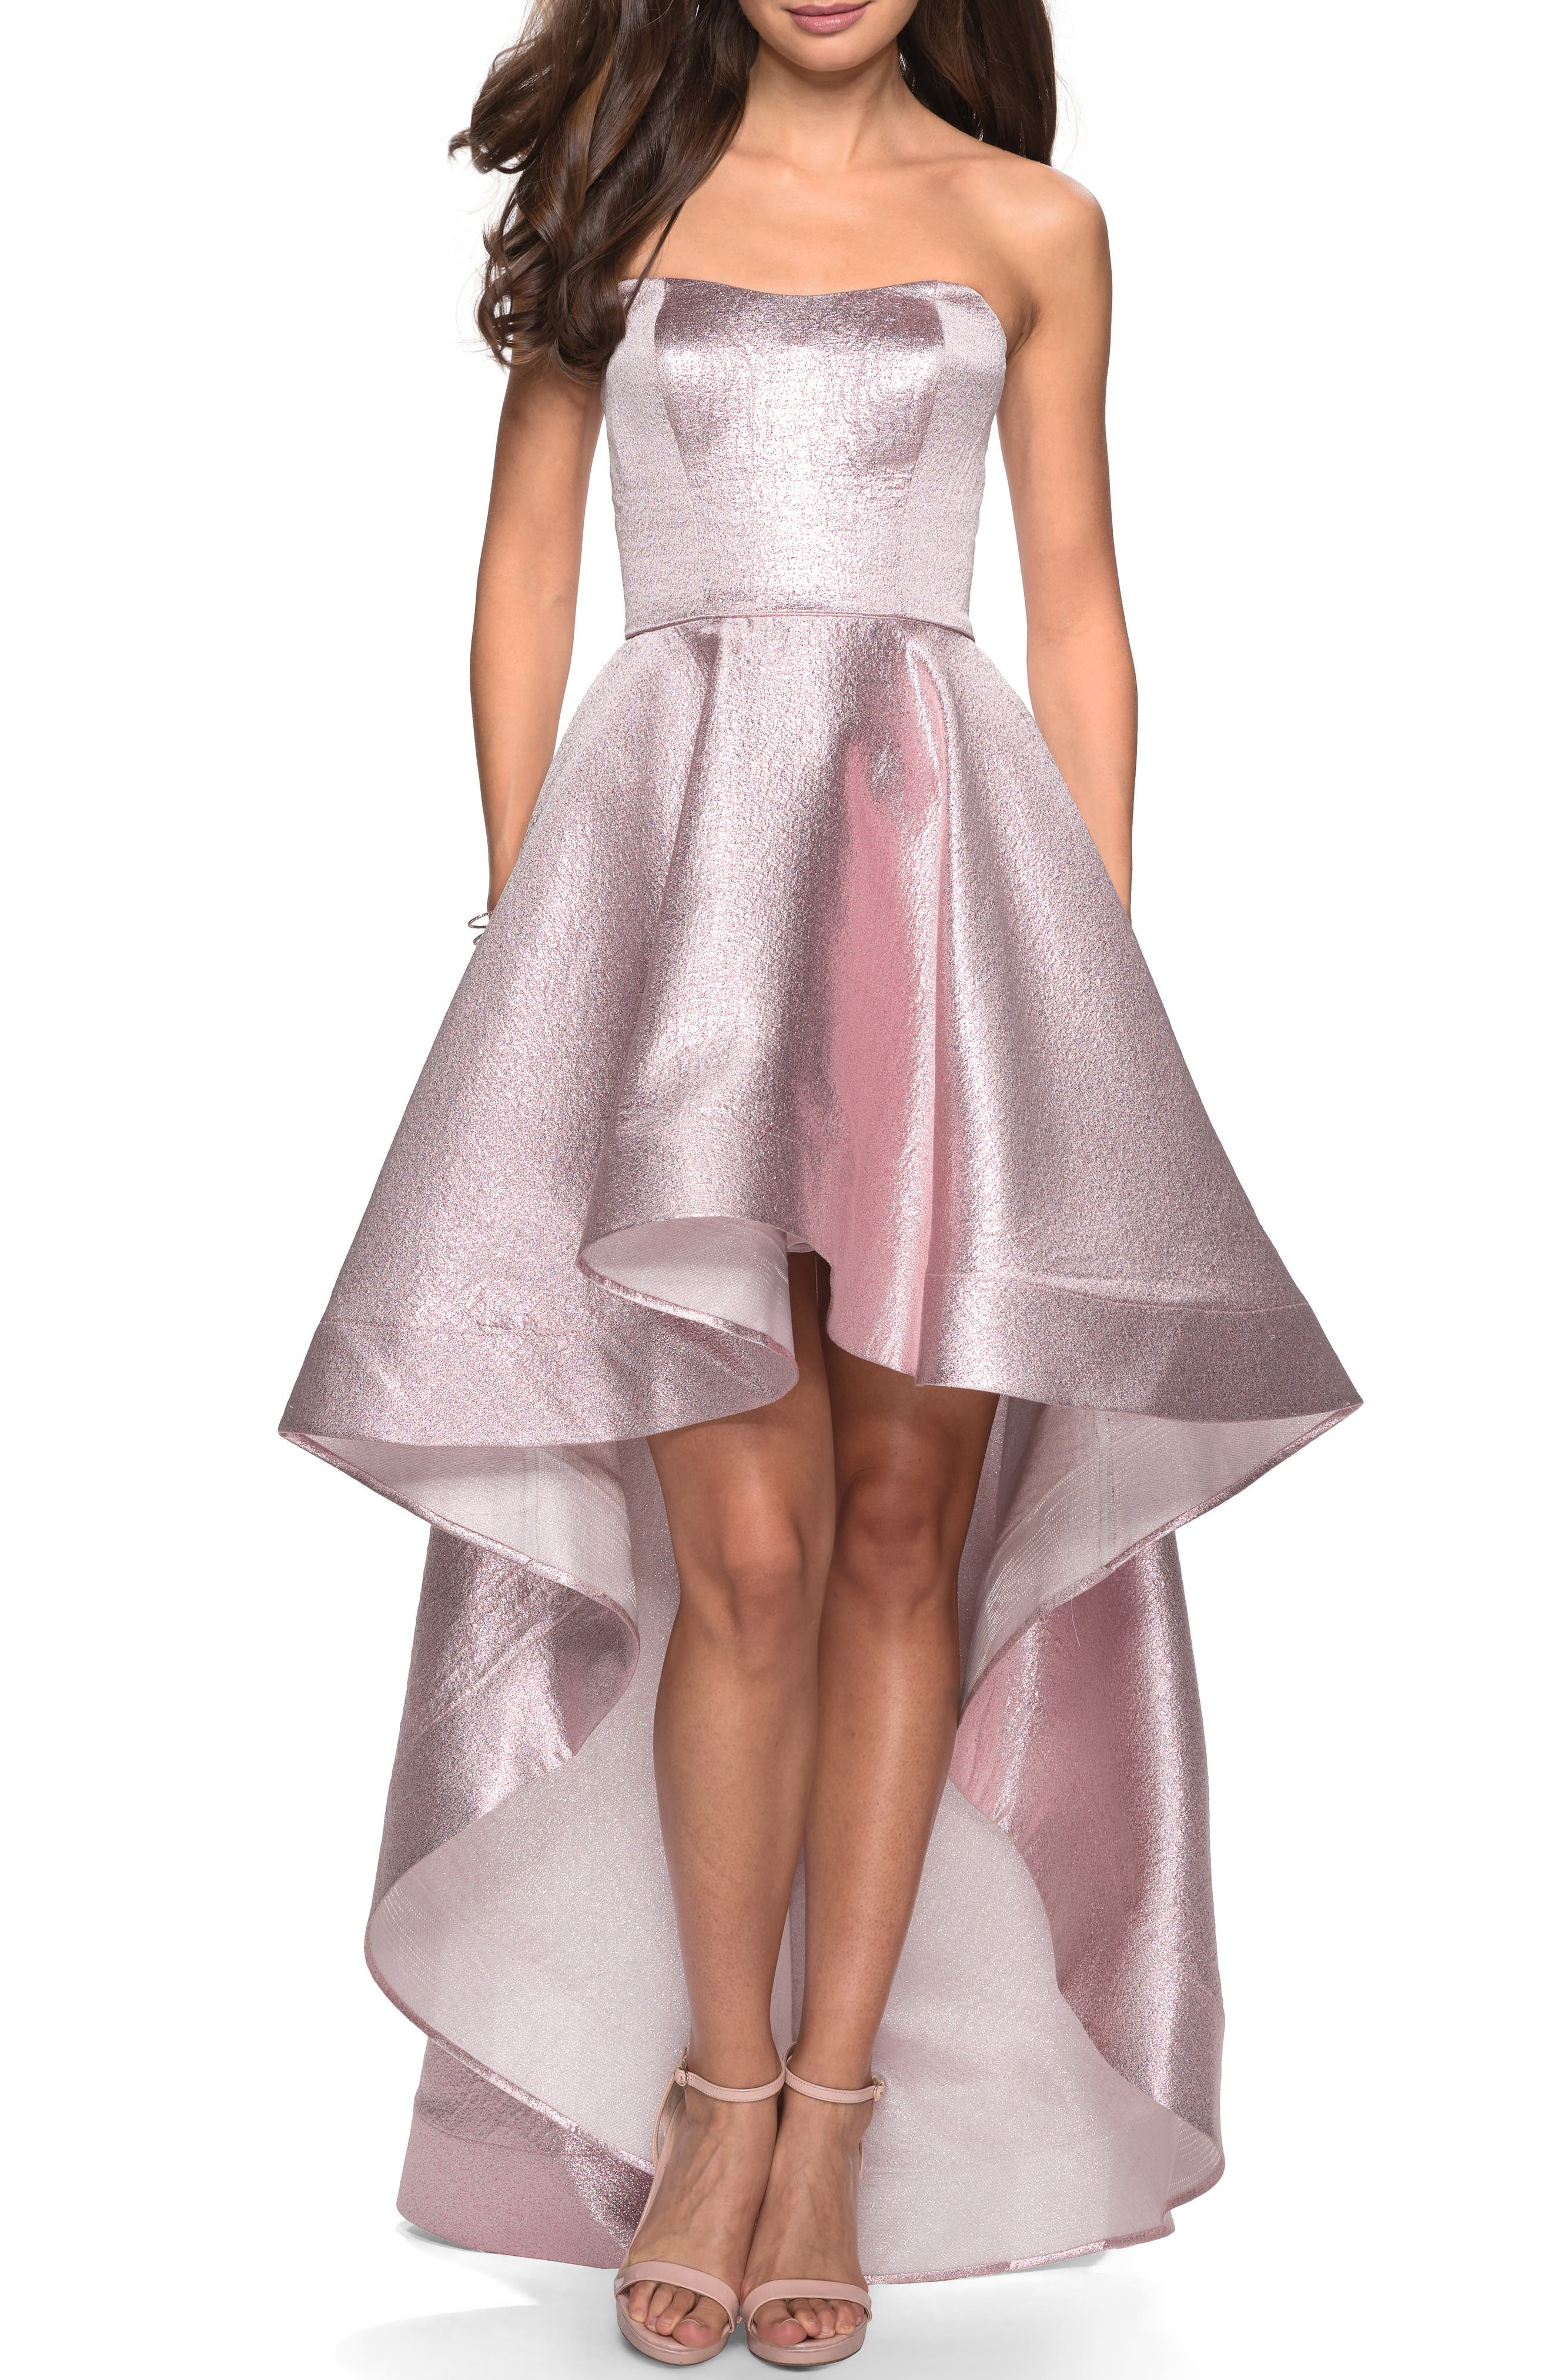 La Femme Strapless High/low Evening Dress, Pink